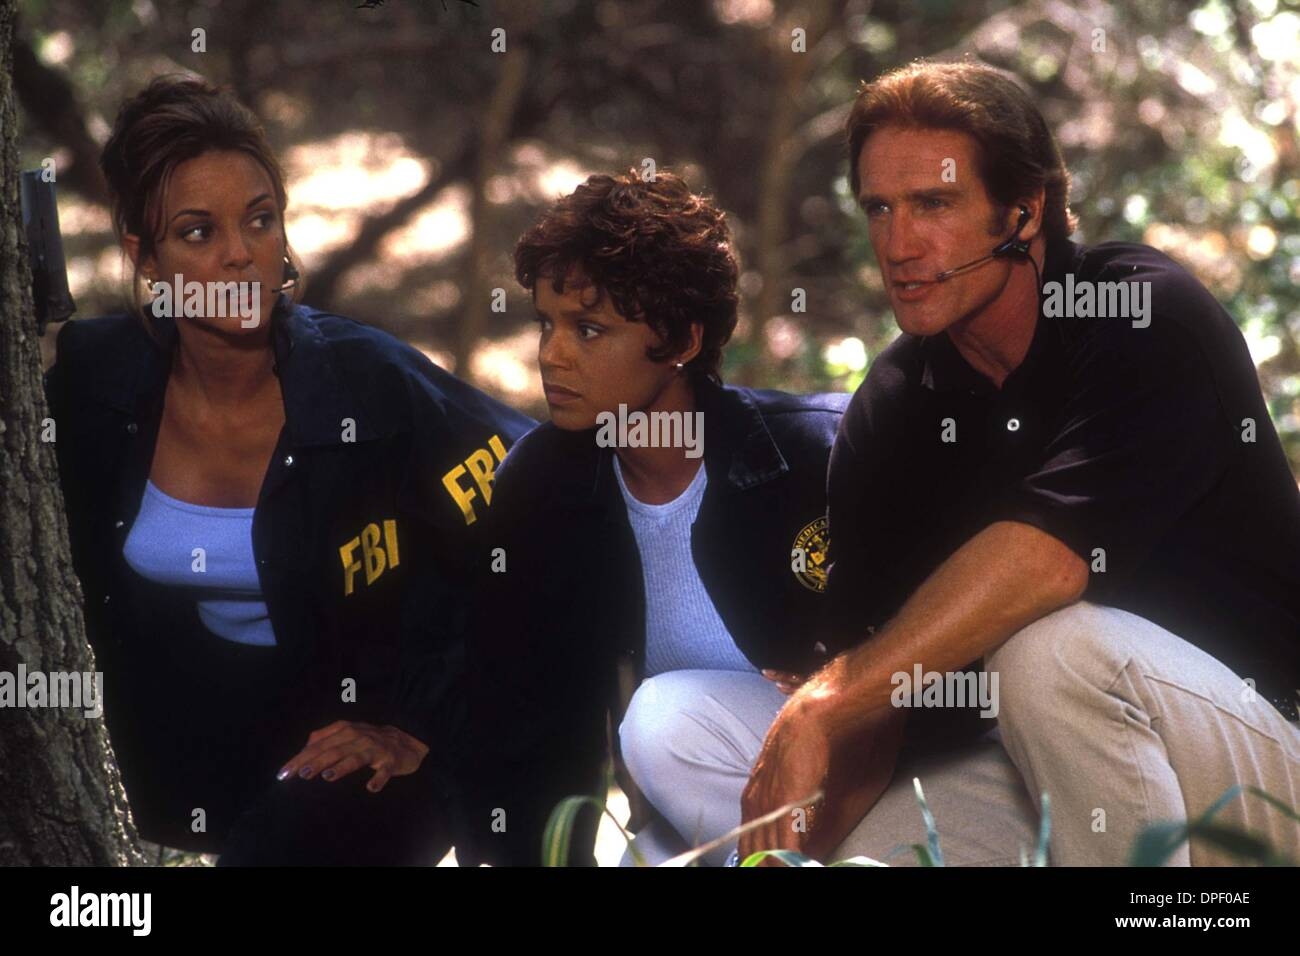 May 26, 2006 - K13513LL.''DIAGNOSIS MURDER'' YEAR 6.SUPPLIED BY   PHOTOS, INC..TV-FILM-STILL (Credit Image: © Globe Photos/ZUMApress.com) - Stock Image